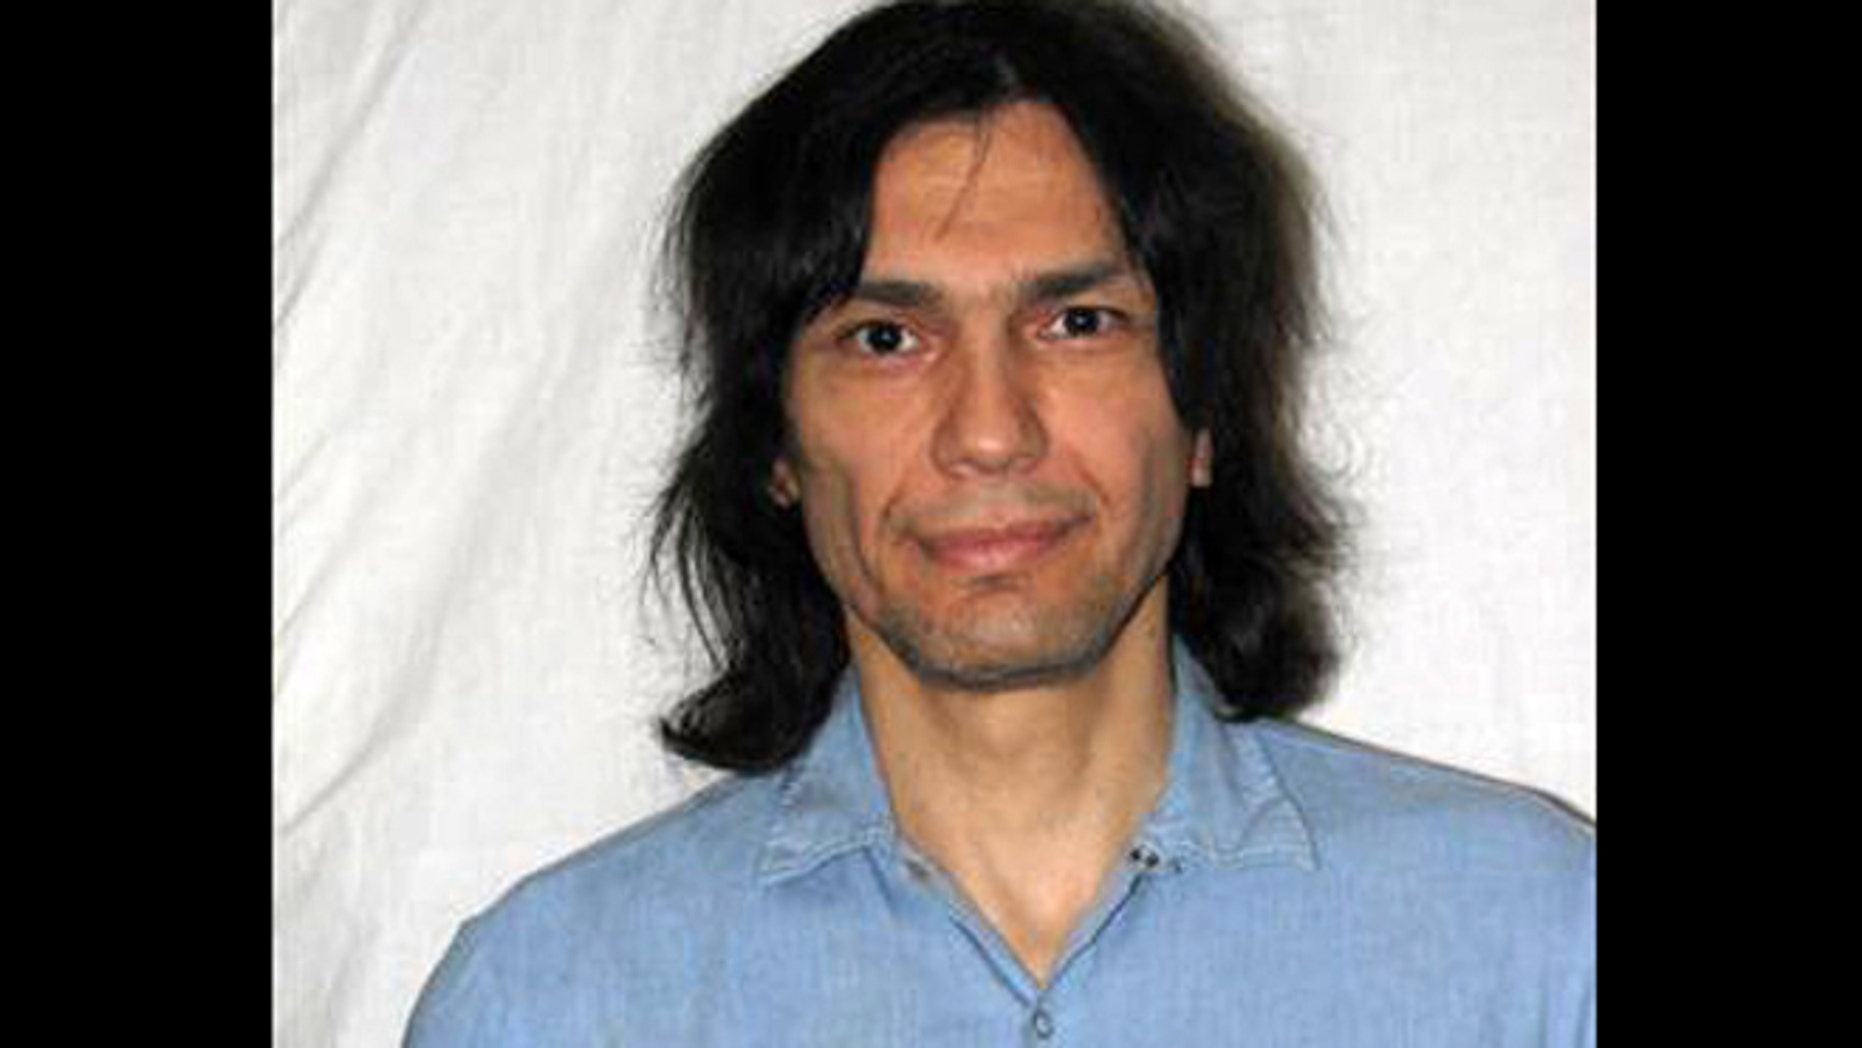 This photo released on Friday June 7, 2013, shows convicted killer Richard Ramirez as seen in this June 15, 2007, photo in San Quentin State Prison in Marine County, Calif. California corrections officials say convicted serial killer Ramirez, known as the Night Stalker, has died.